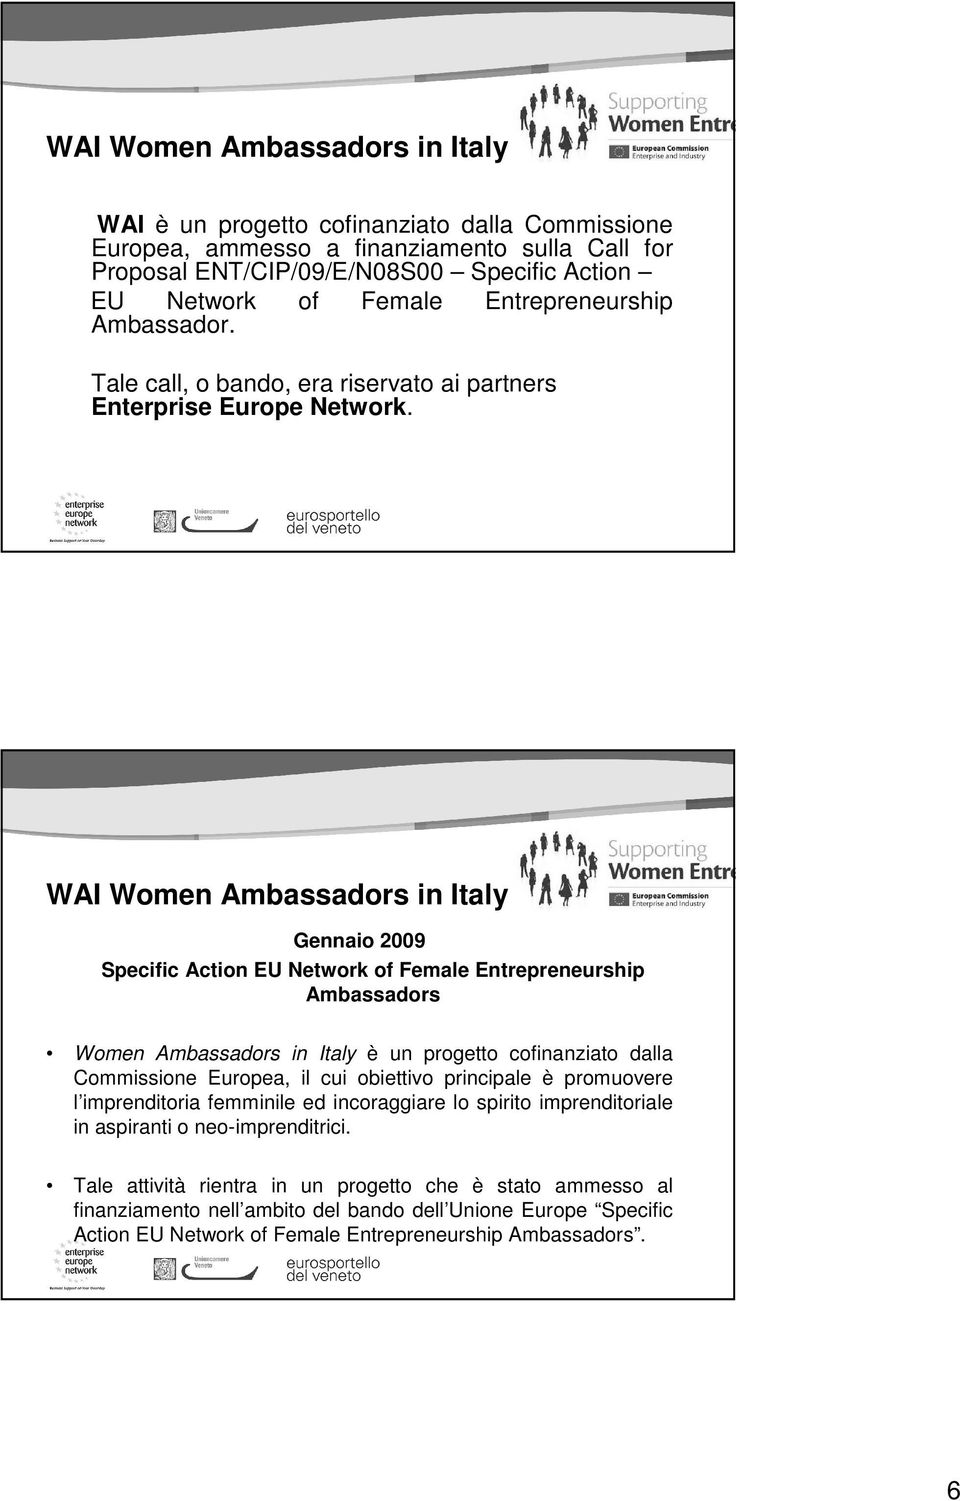 WAI Women Ambassadors in Italy Gennaio 2009 Specific Action EU Network of Female Entrepreneurship Ambassadors Women Ambassadors in Italy è un progetto cofinanziato dalla Commissione Europea, il cui